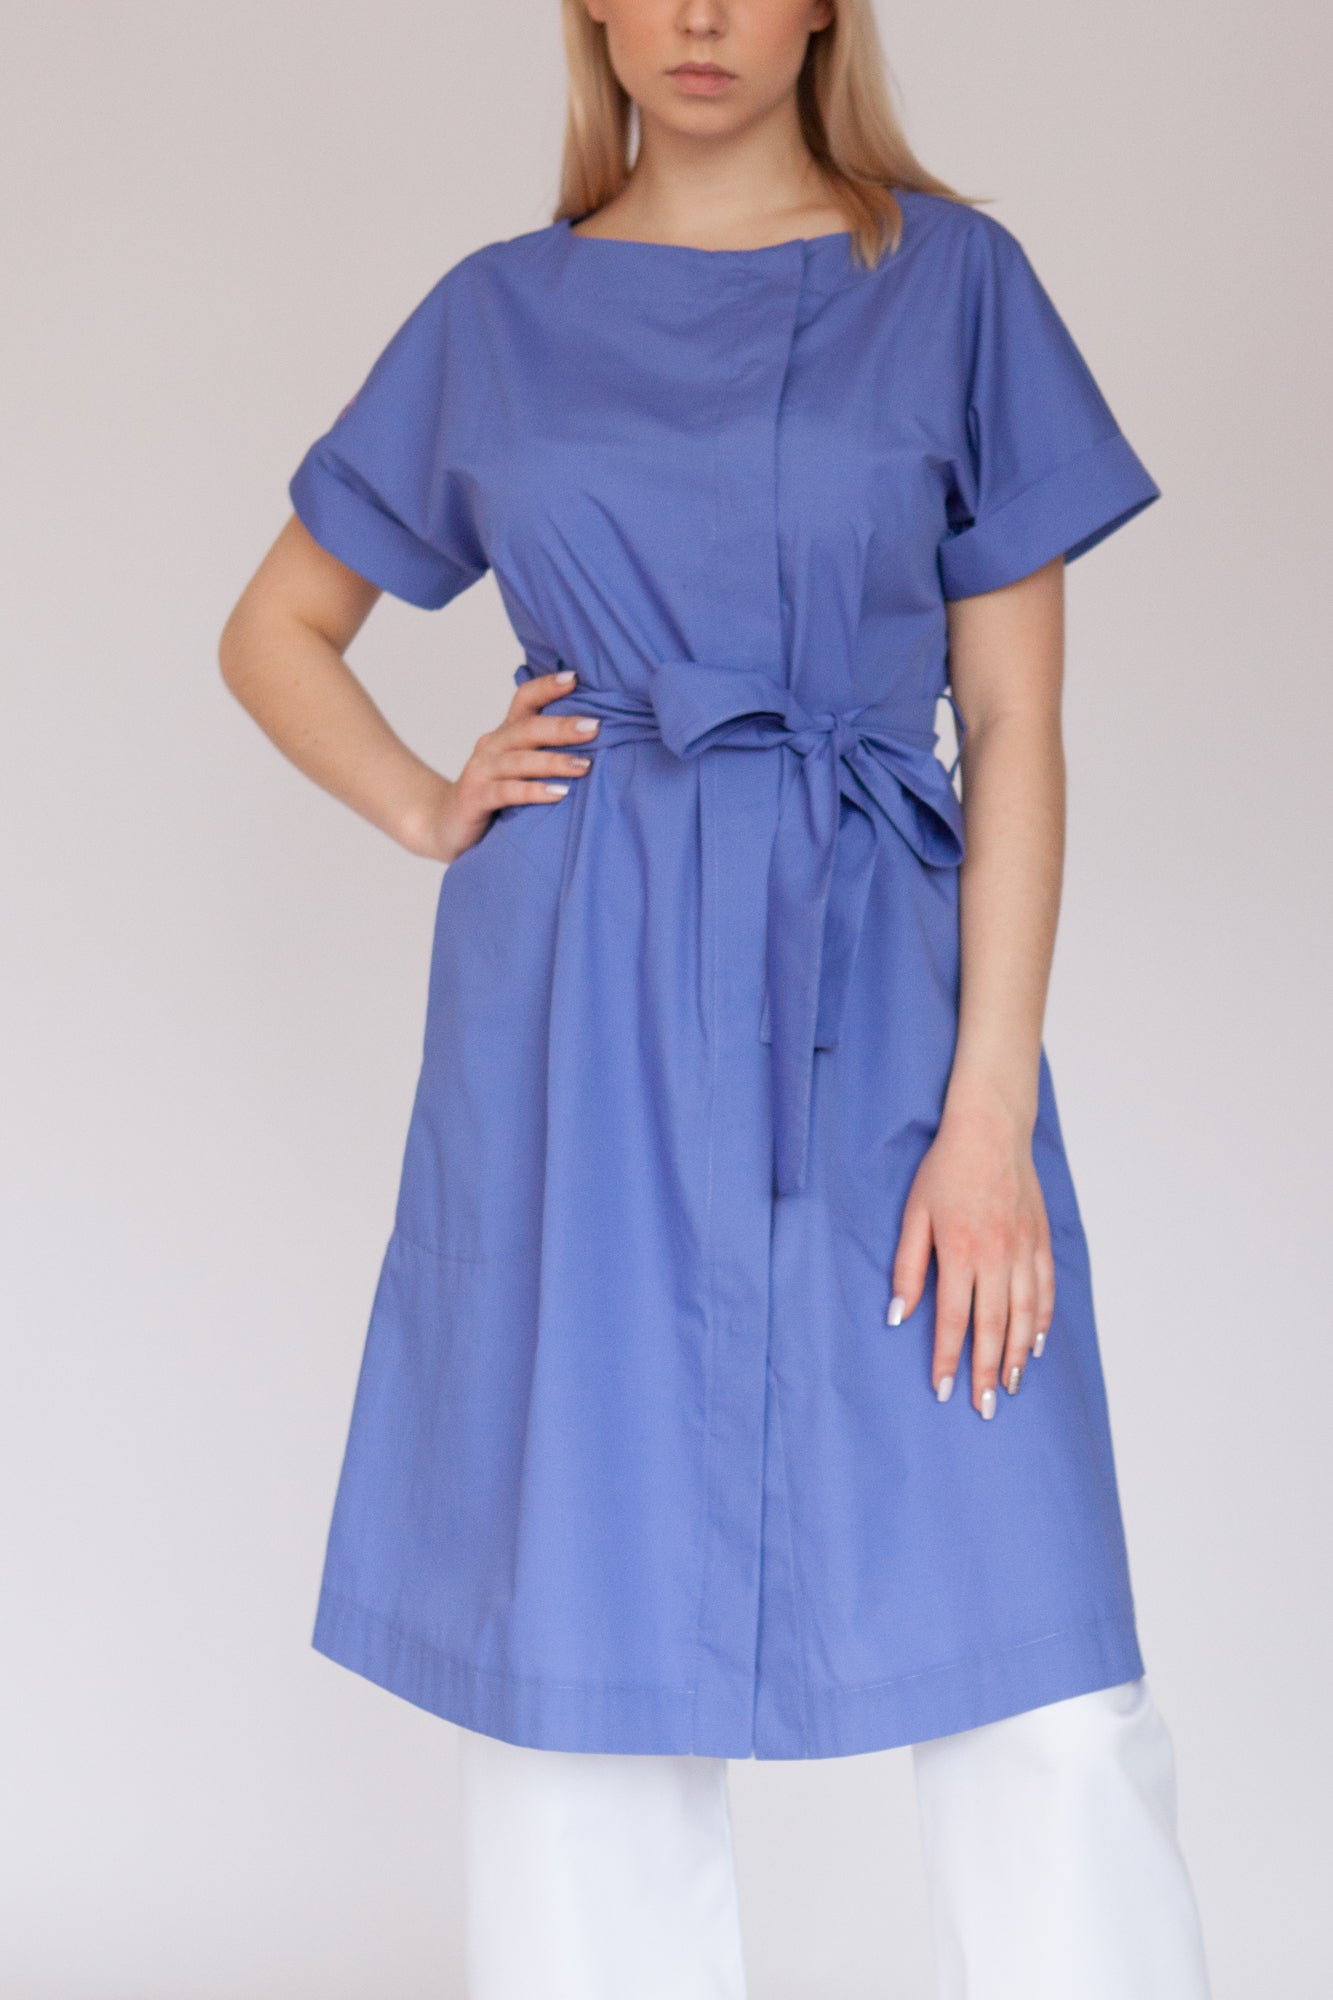 <transcy>Medical Dress &quot;Sofia&quot;</transcy>